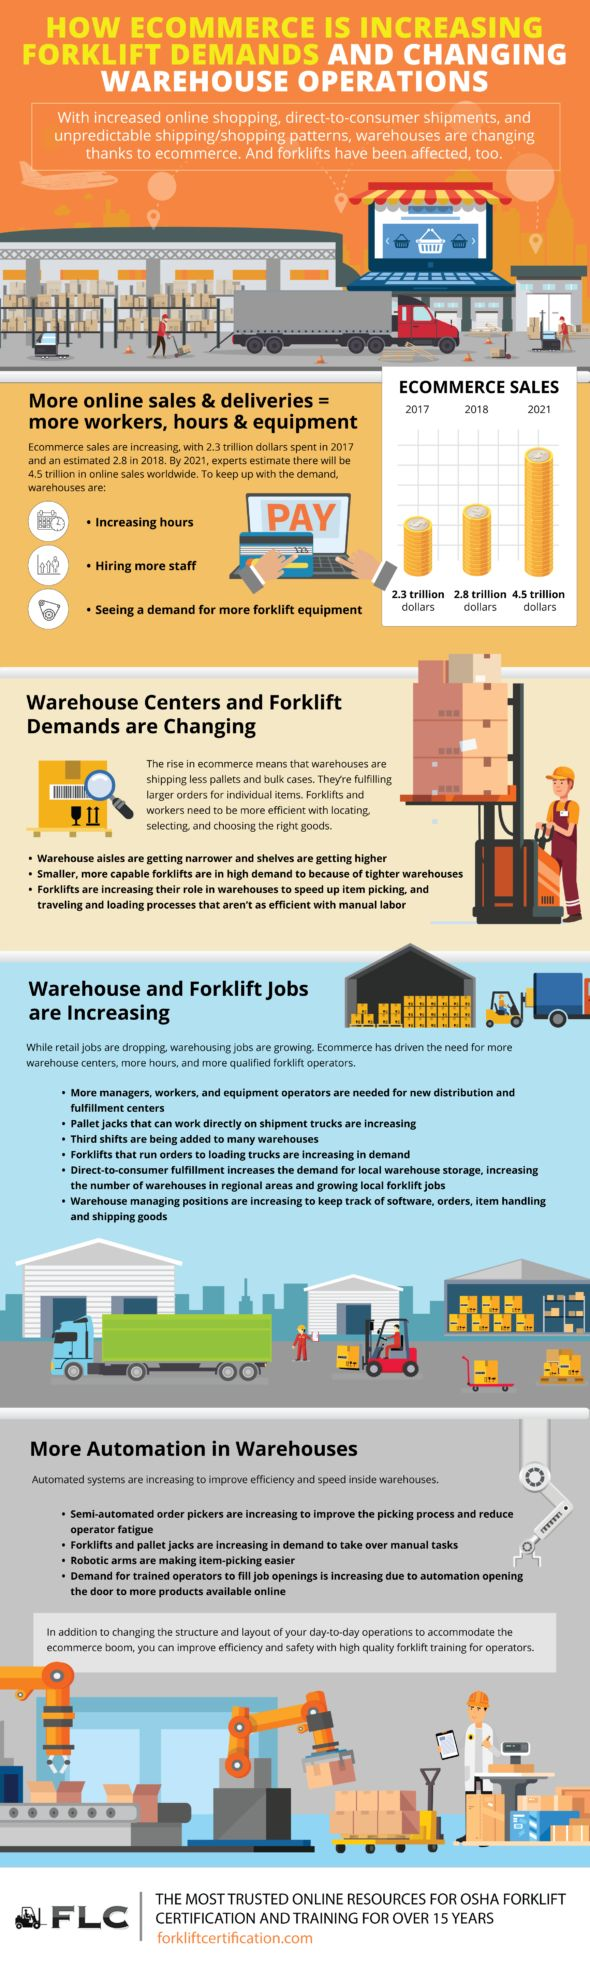 How Ecommerce is Increasing Forklift Demands and Changing Warehouse Operations